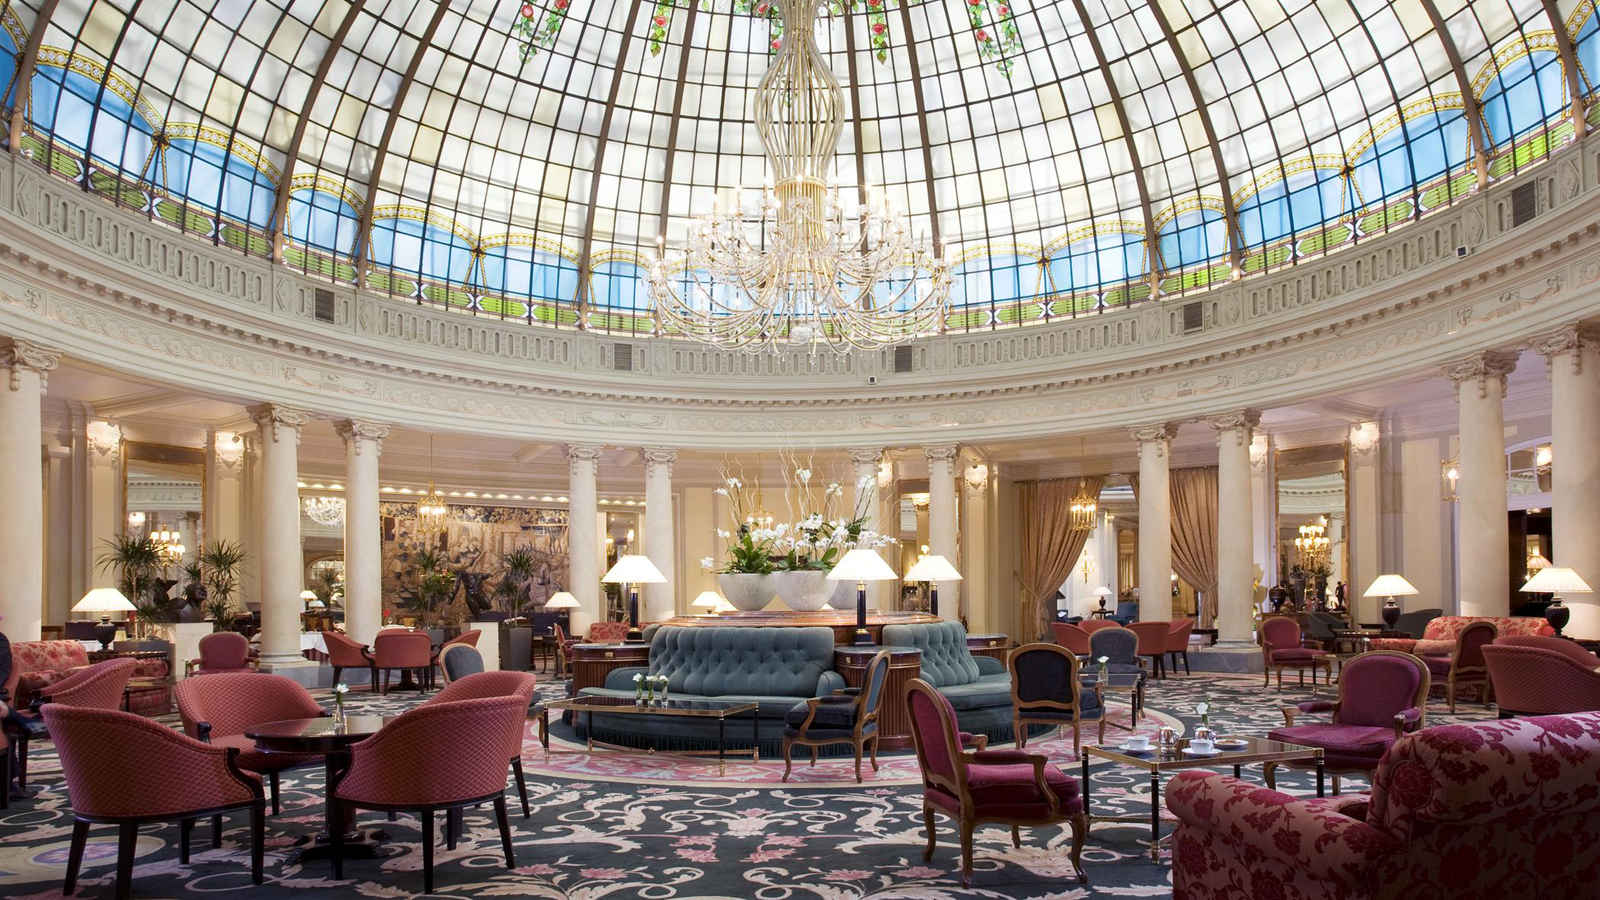 Ritz and palace two legendary luxury hotels history of for Hotel palace